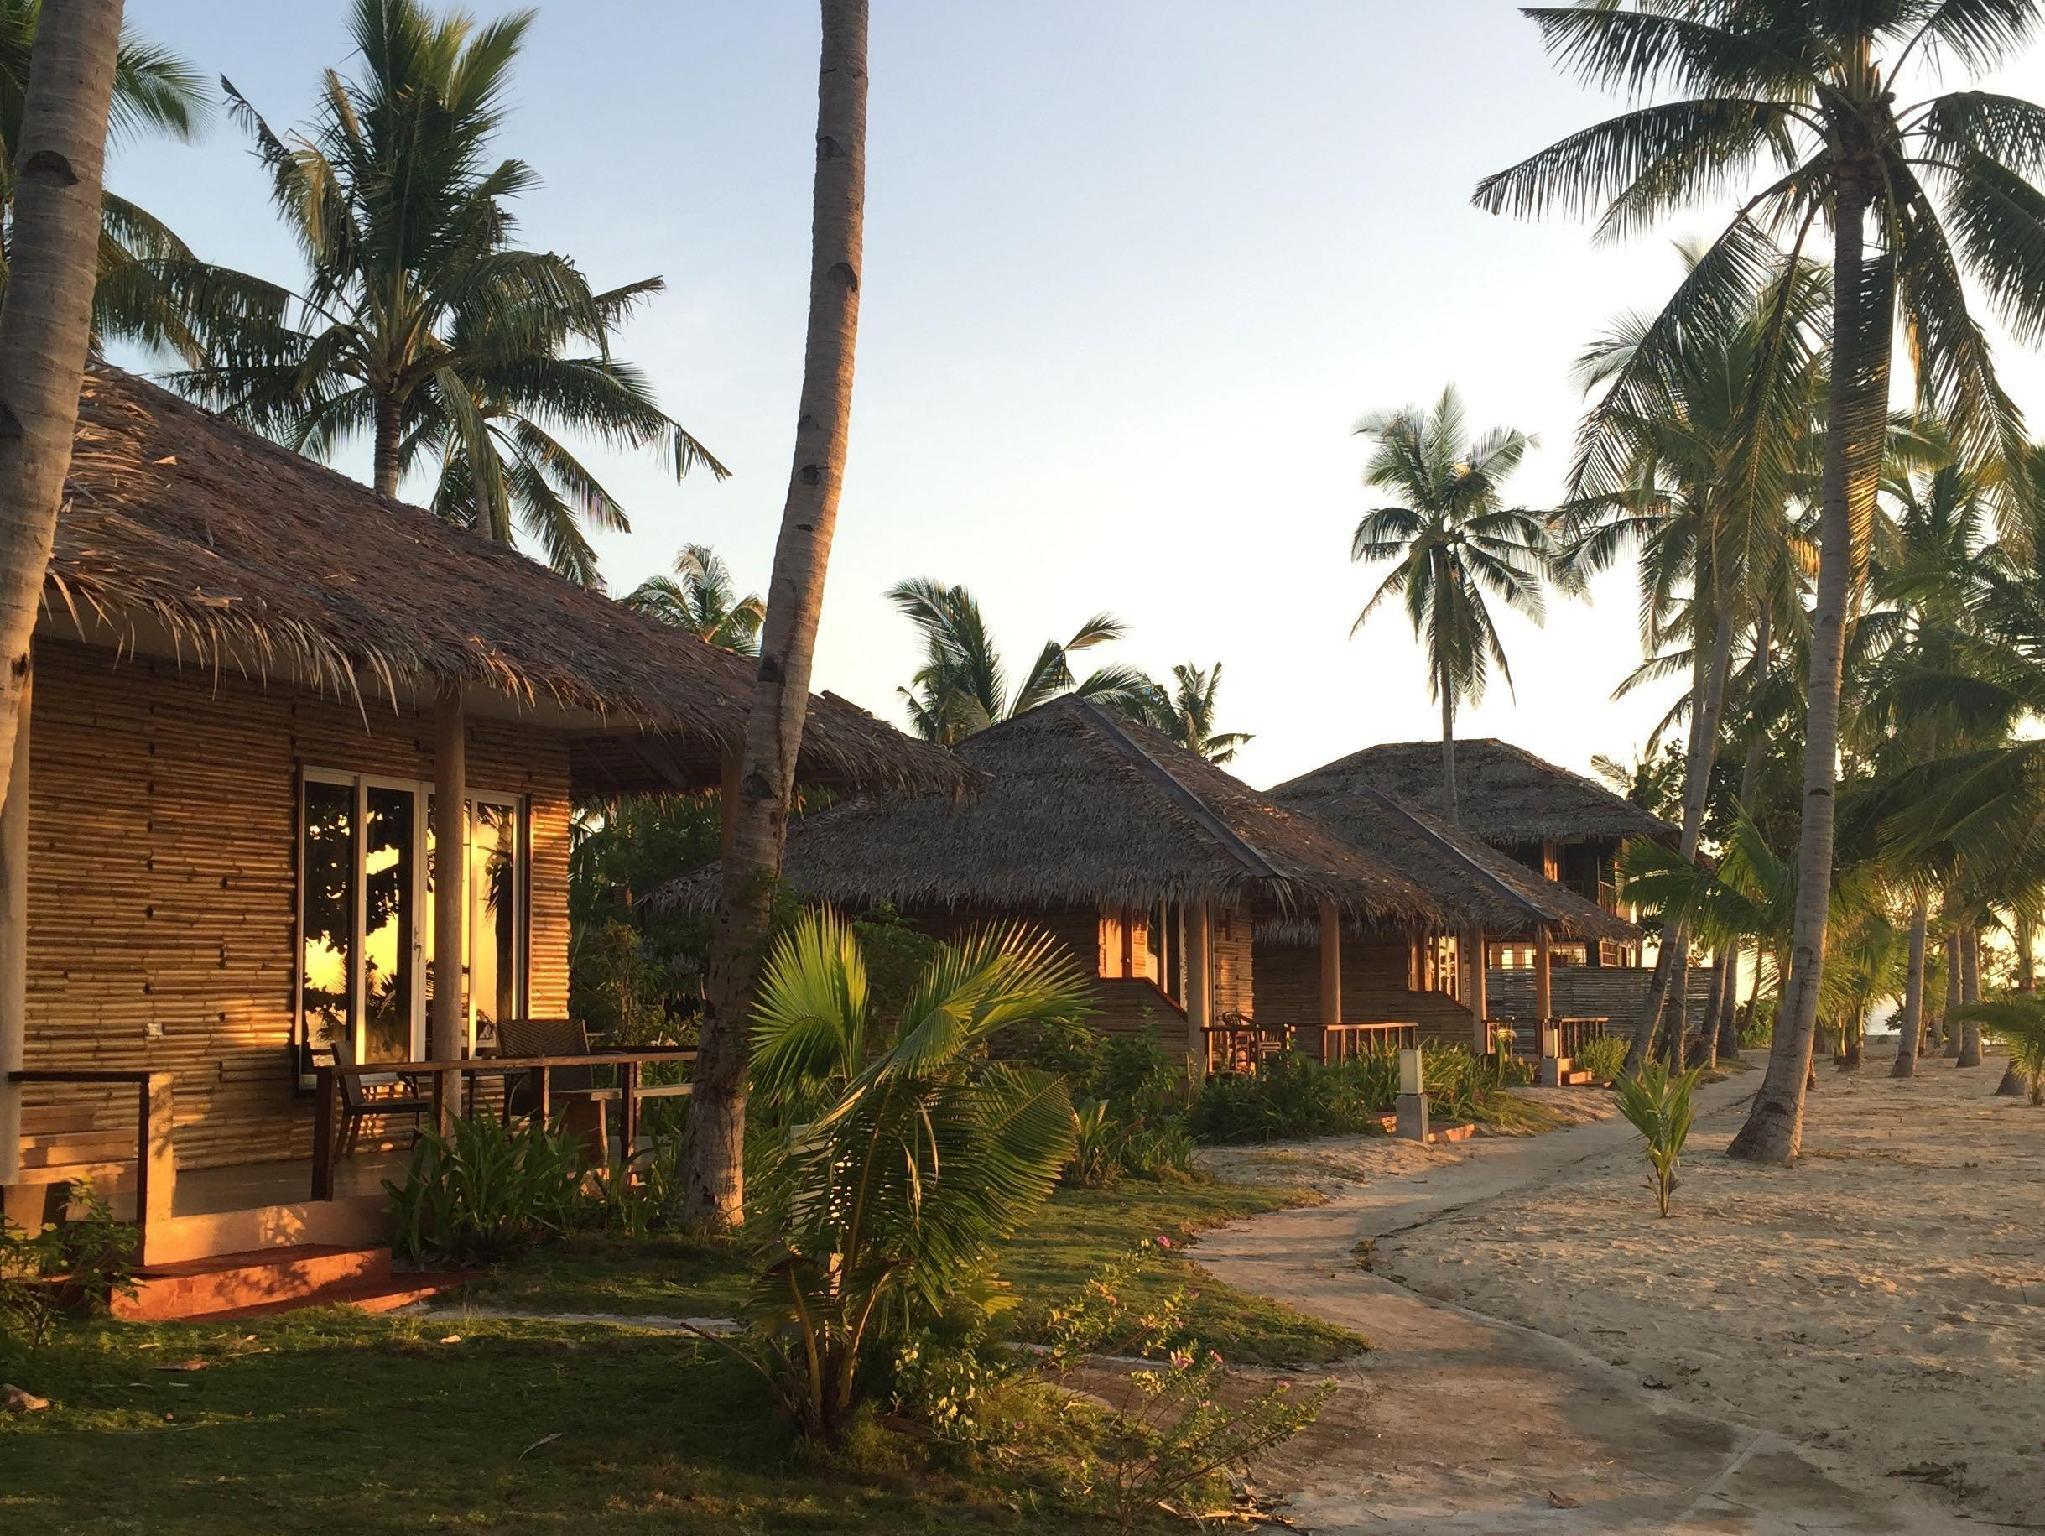 Kota Beach Resort Sebu